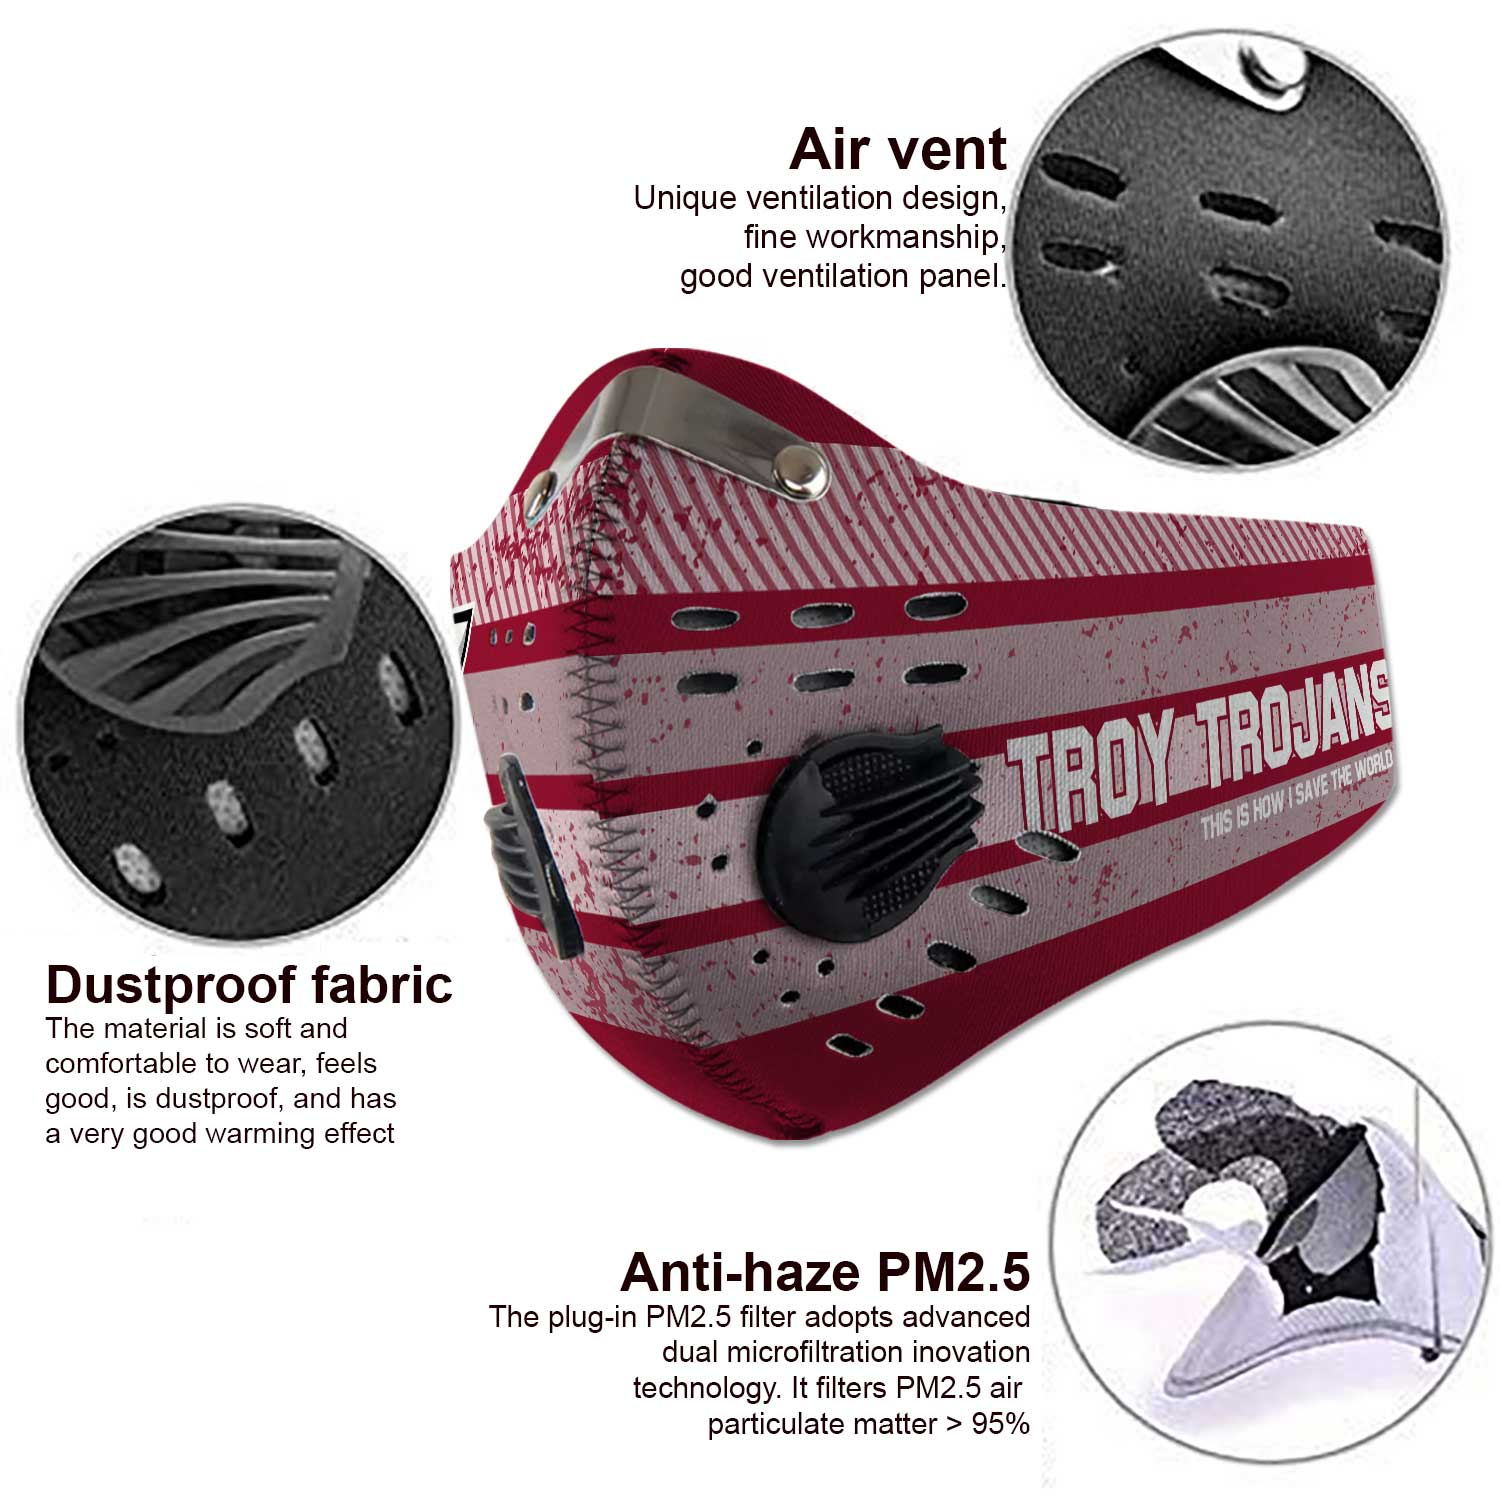 Troy trojans this is how i save the world carbon filter face mask 4